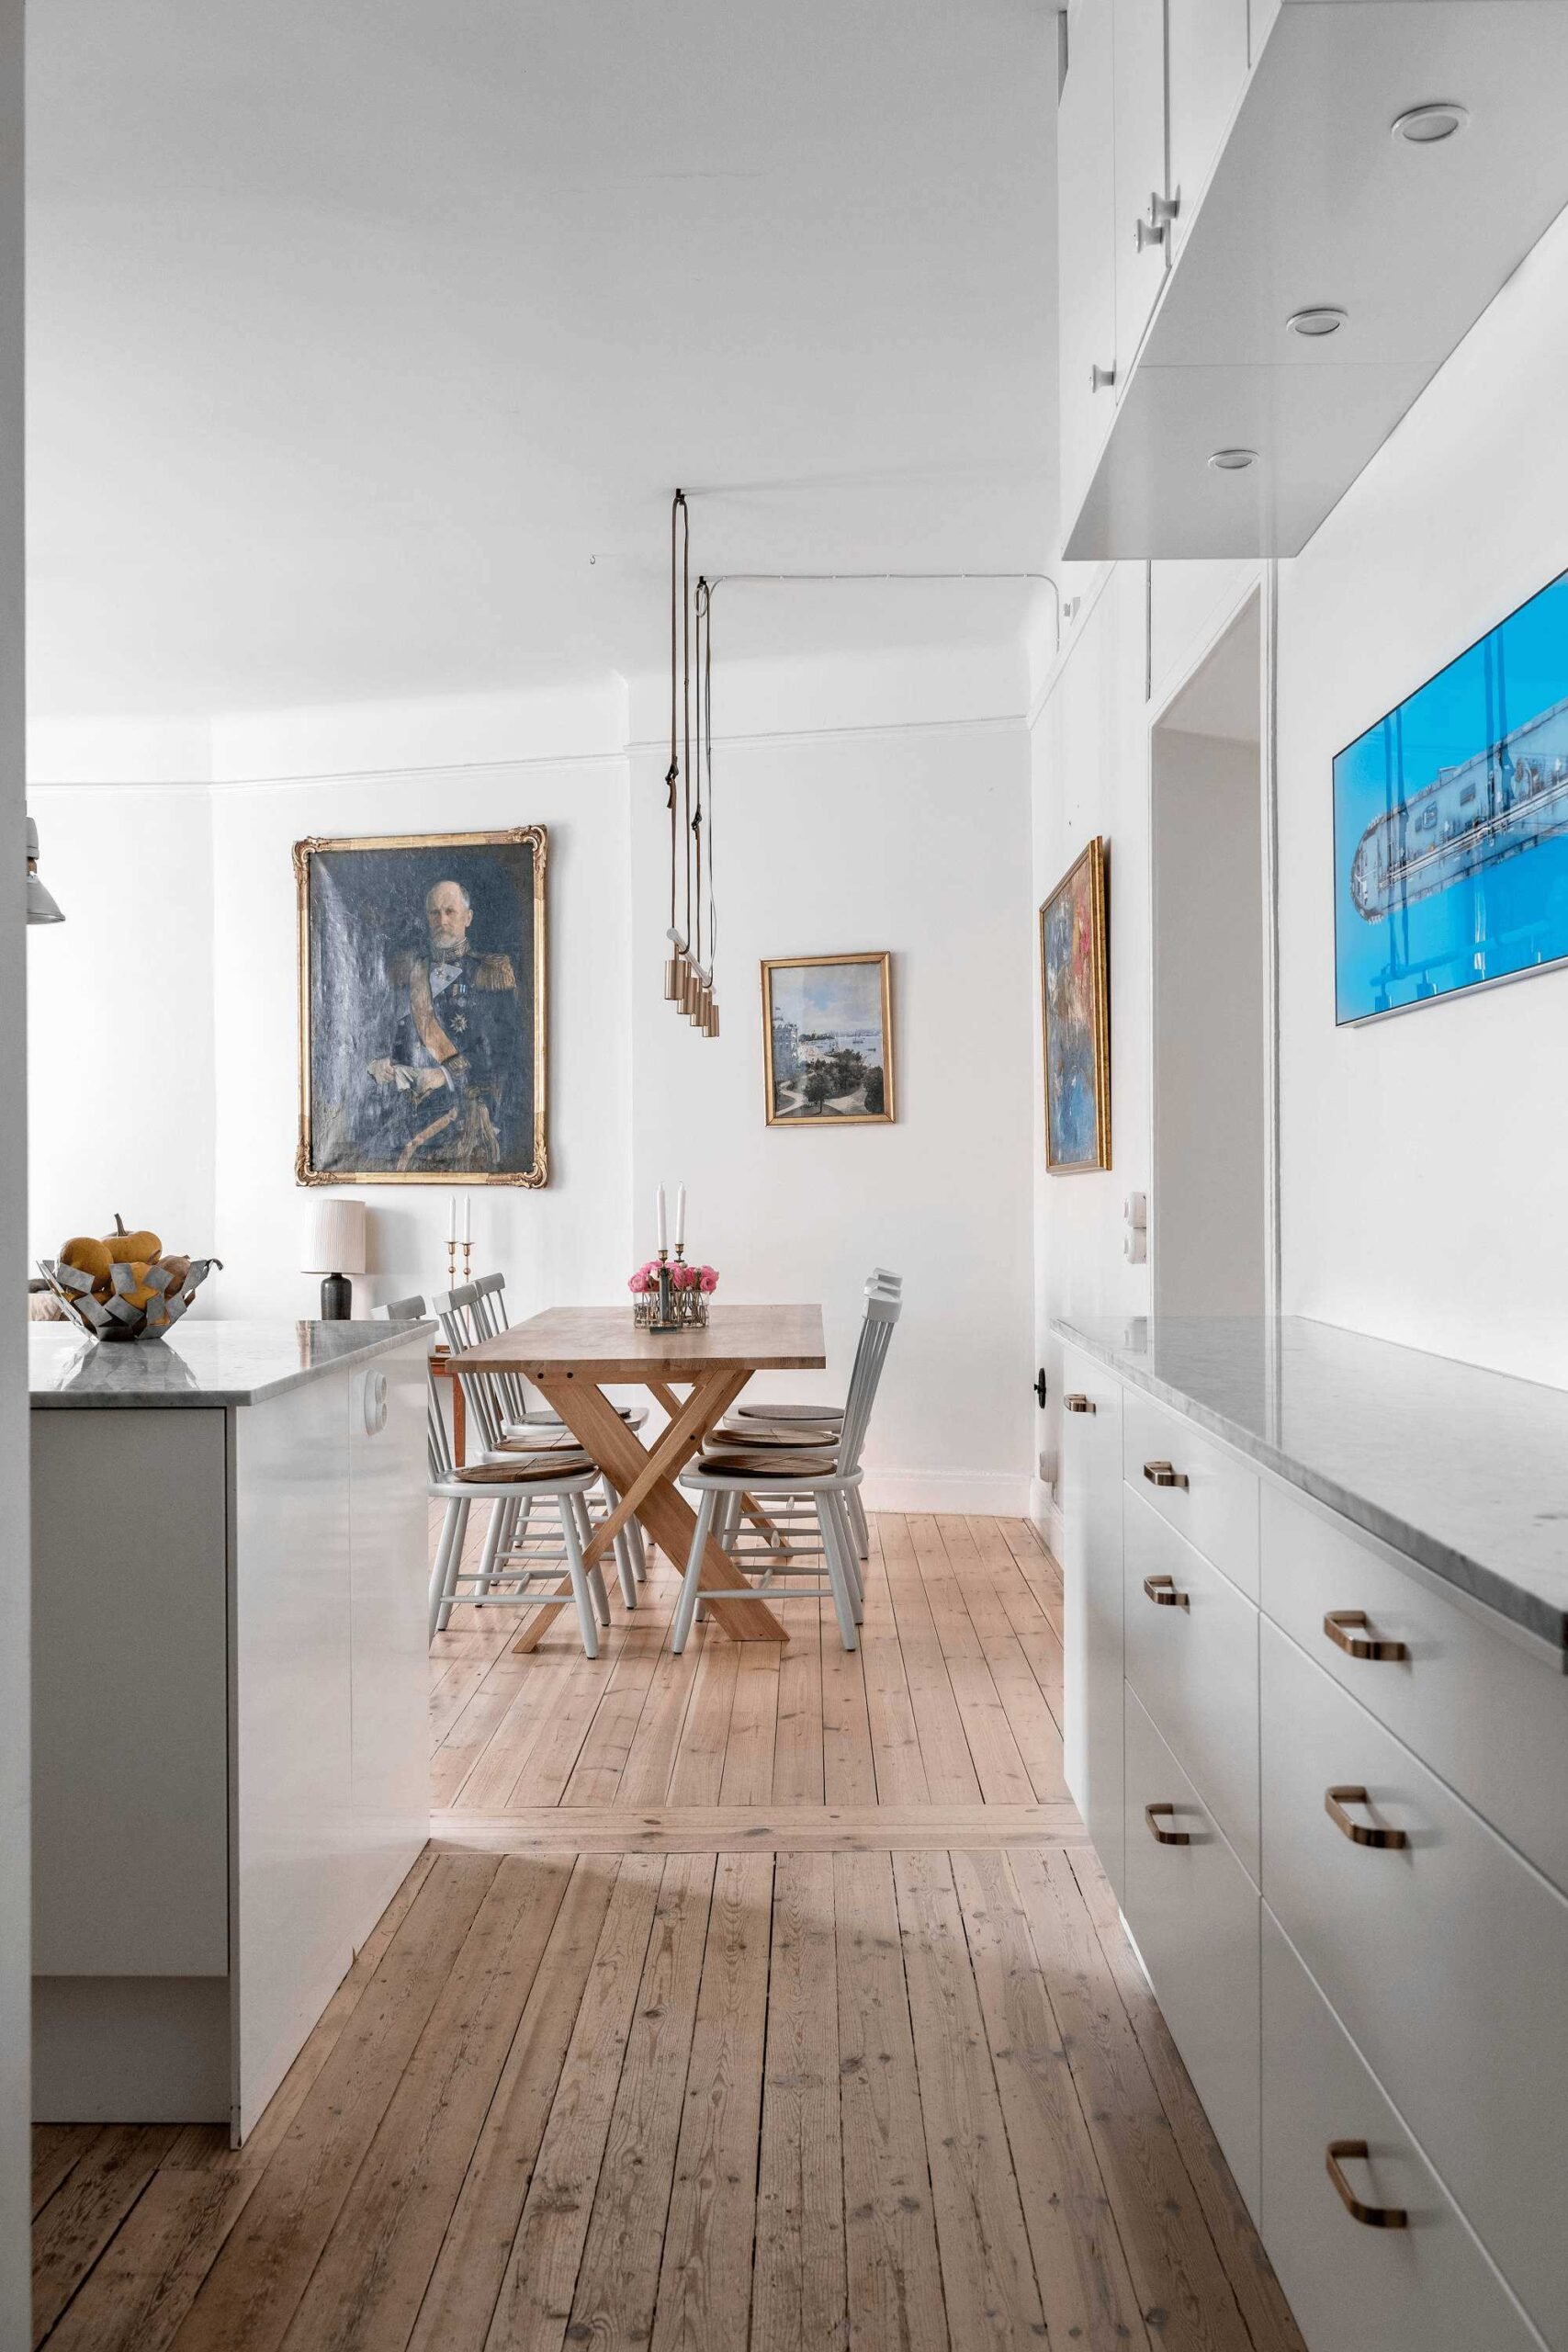 this-is-art-inspired-Scandinavian-style-apartment-with-wooden-floors-art-on-the-wall-and-tables-and-chairs